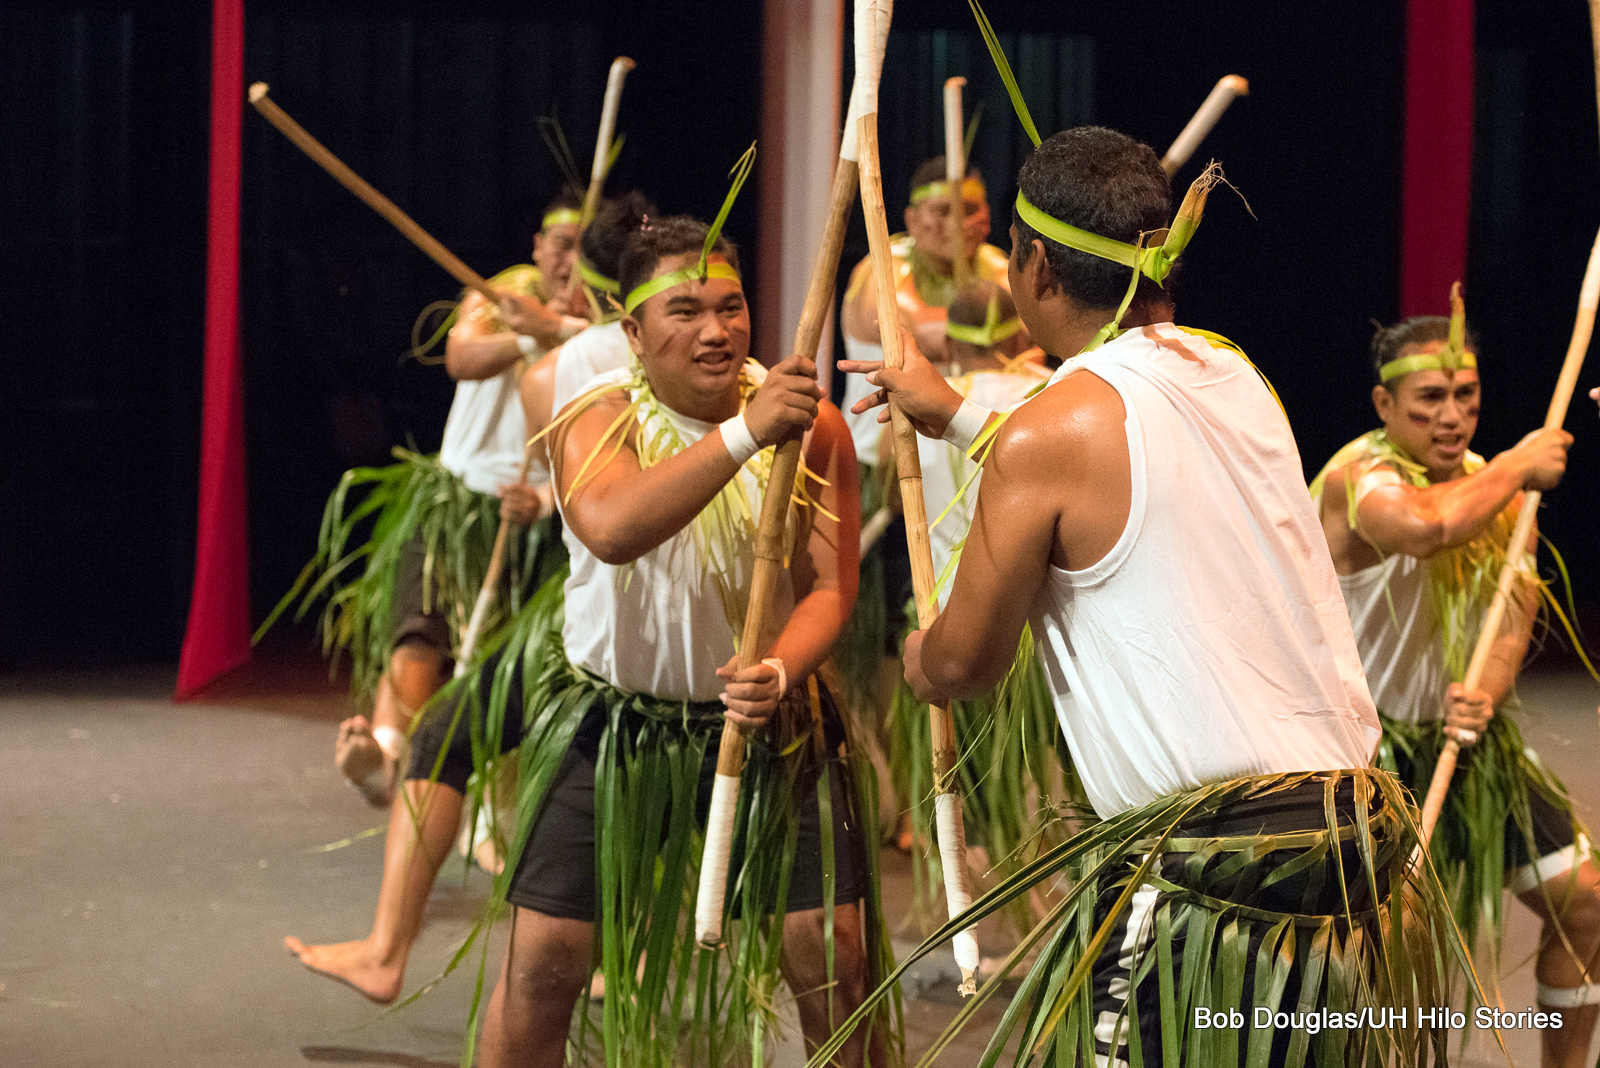 Group of men, green ti skirts, white shirts, holding long poles, some low, some high, leaping in air to hit each other's poles.